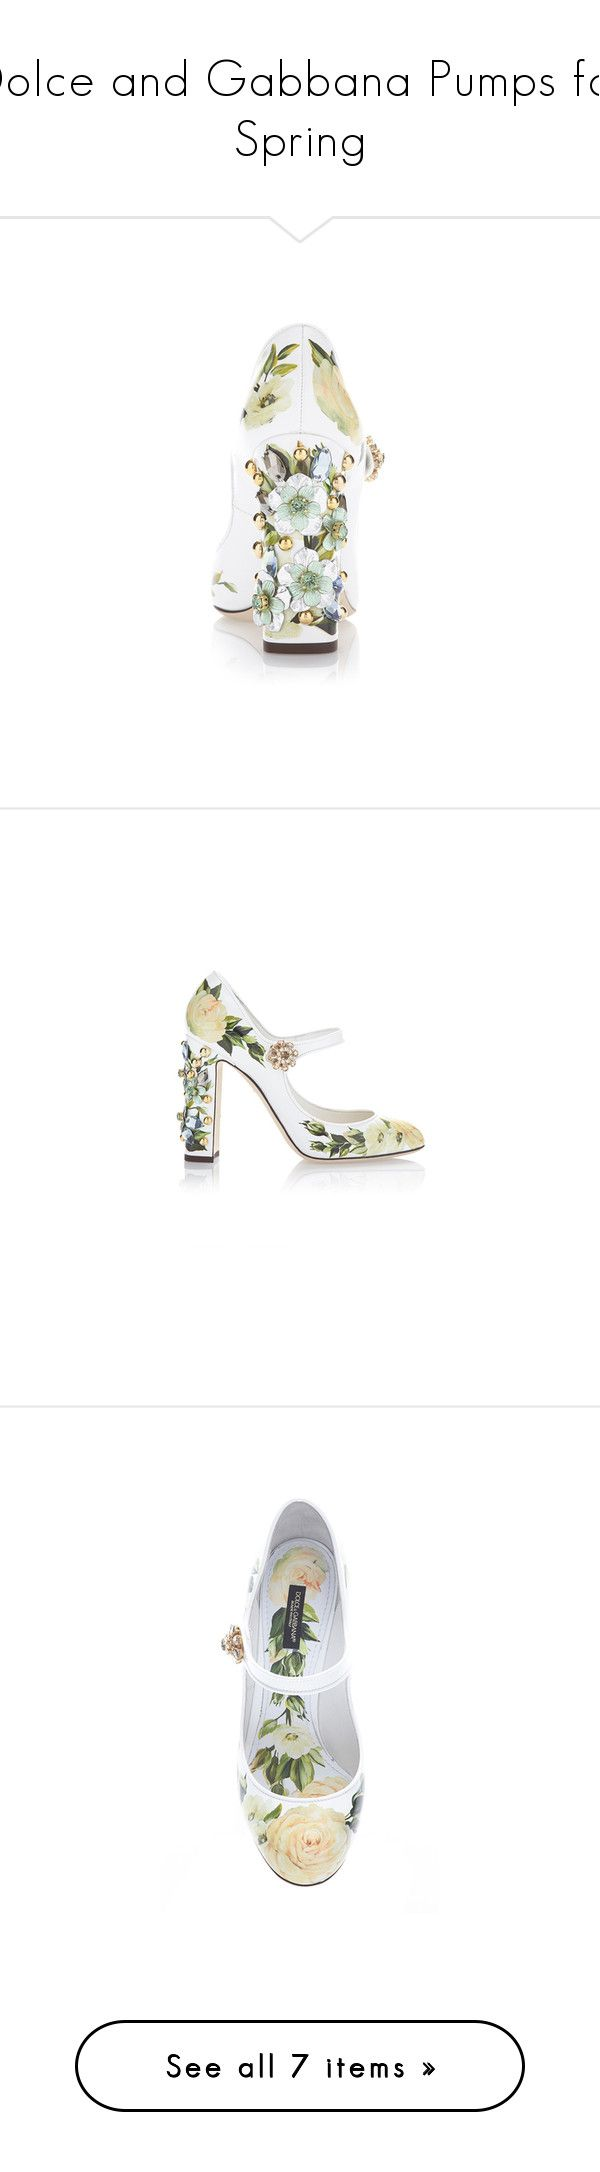 """""""Dolce and Gabbana Pumps for Spring"""" by tara108 ❤ liked on Polyvore featuring shoes, pumps, white mary jane pumps, t-strap mary janes, mary jane shoes, mary-jane shoes, white mary jane shoes, sapato, white patent leather pumps and white patent leather shoes"""